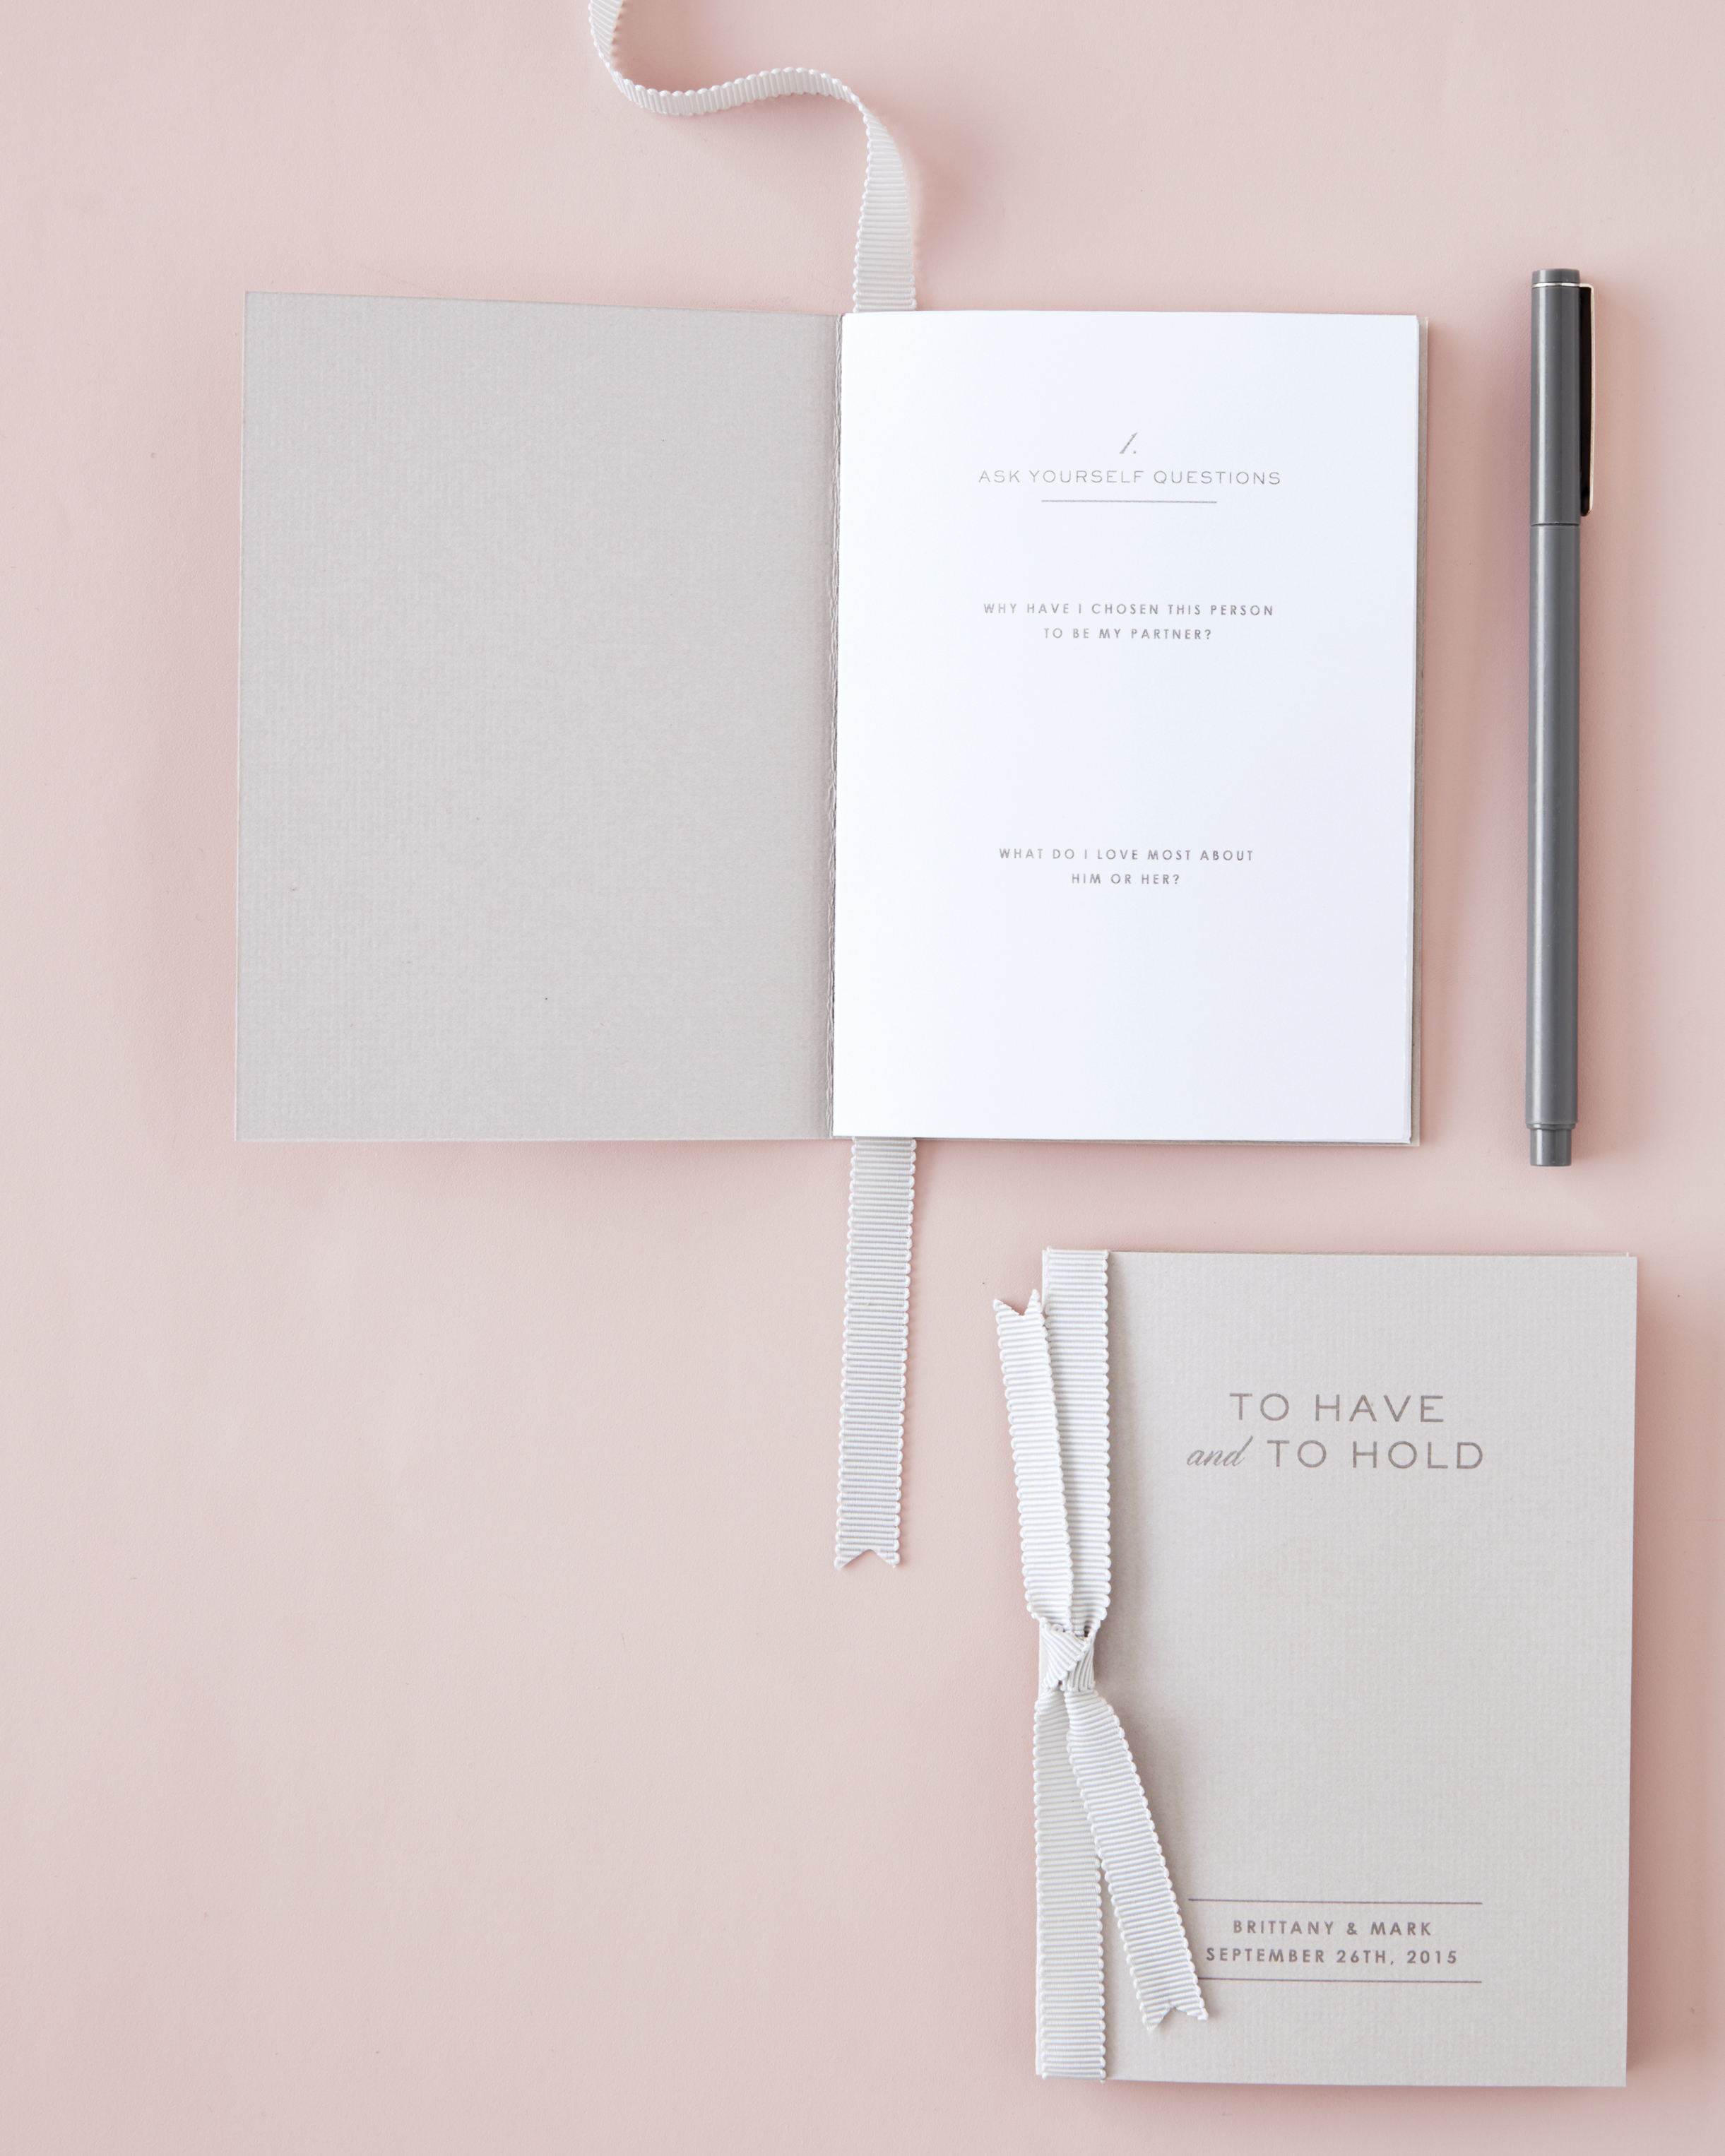 A Handy Workbook to Help You Write Your Wedding Vows